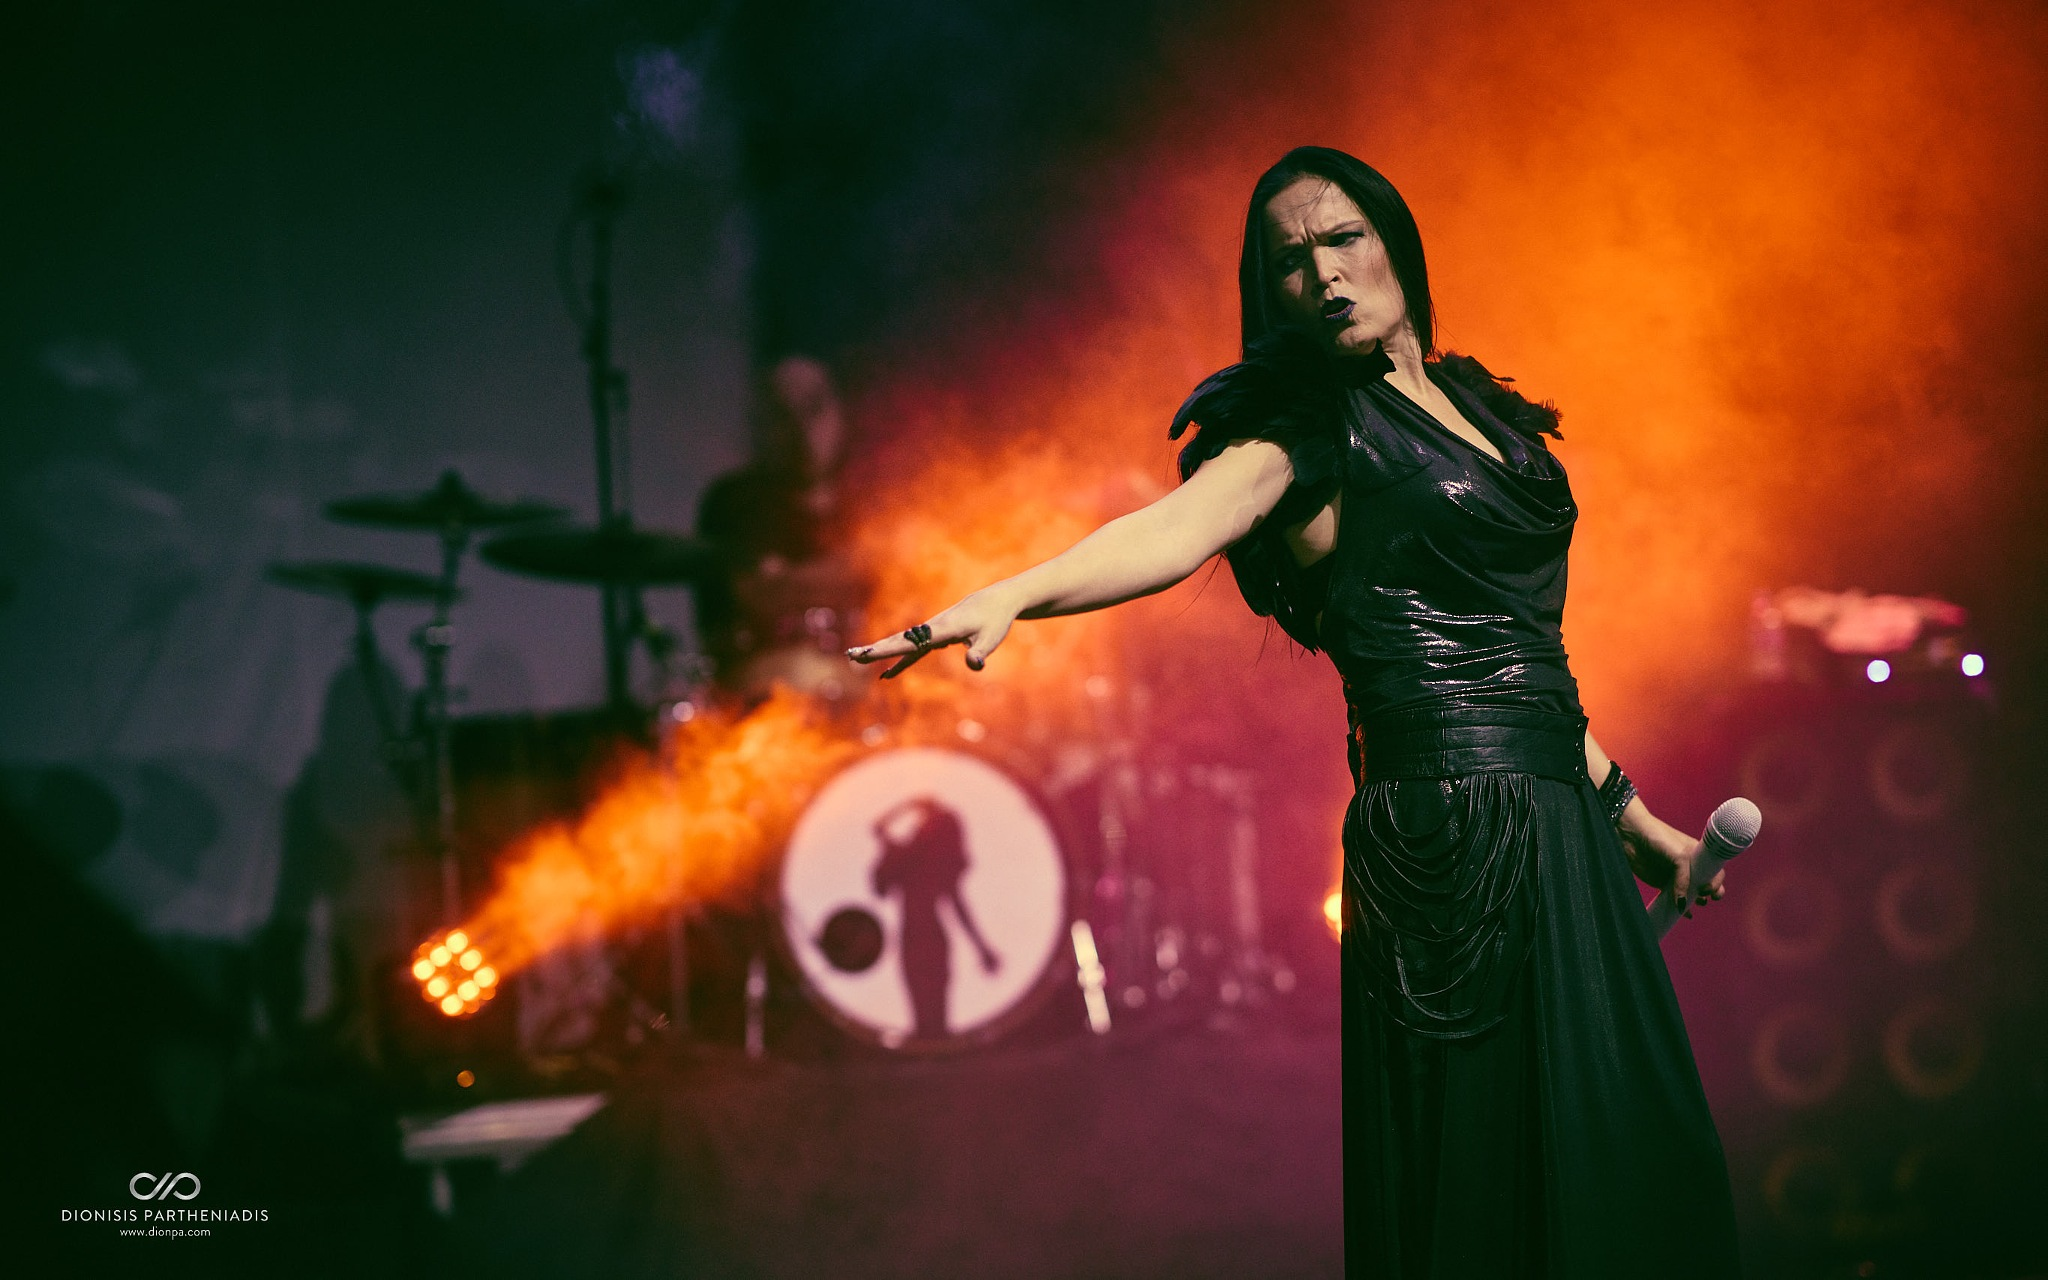 Tarja by Dionisis Partheniadis